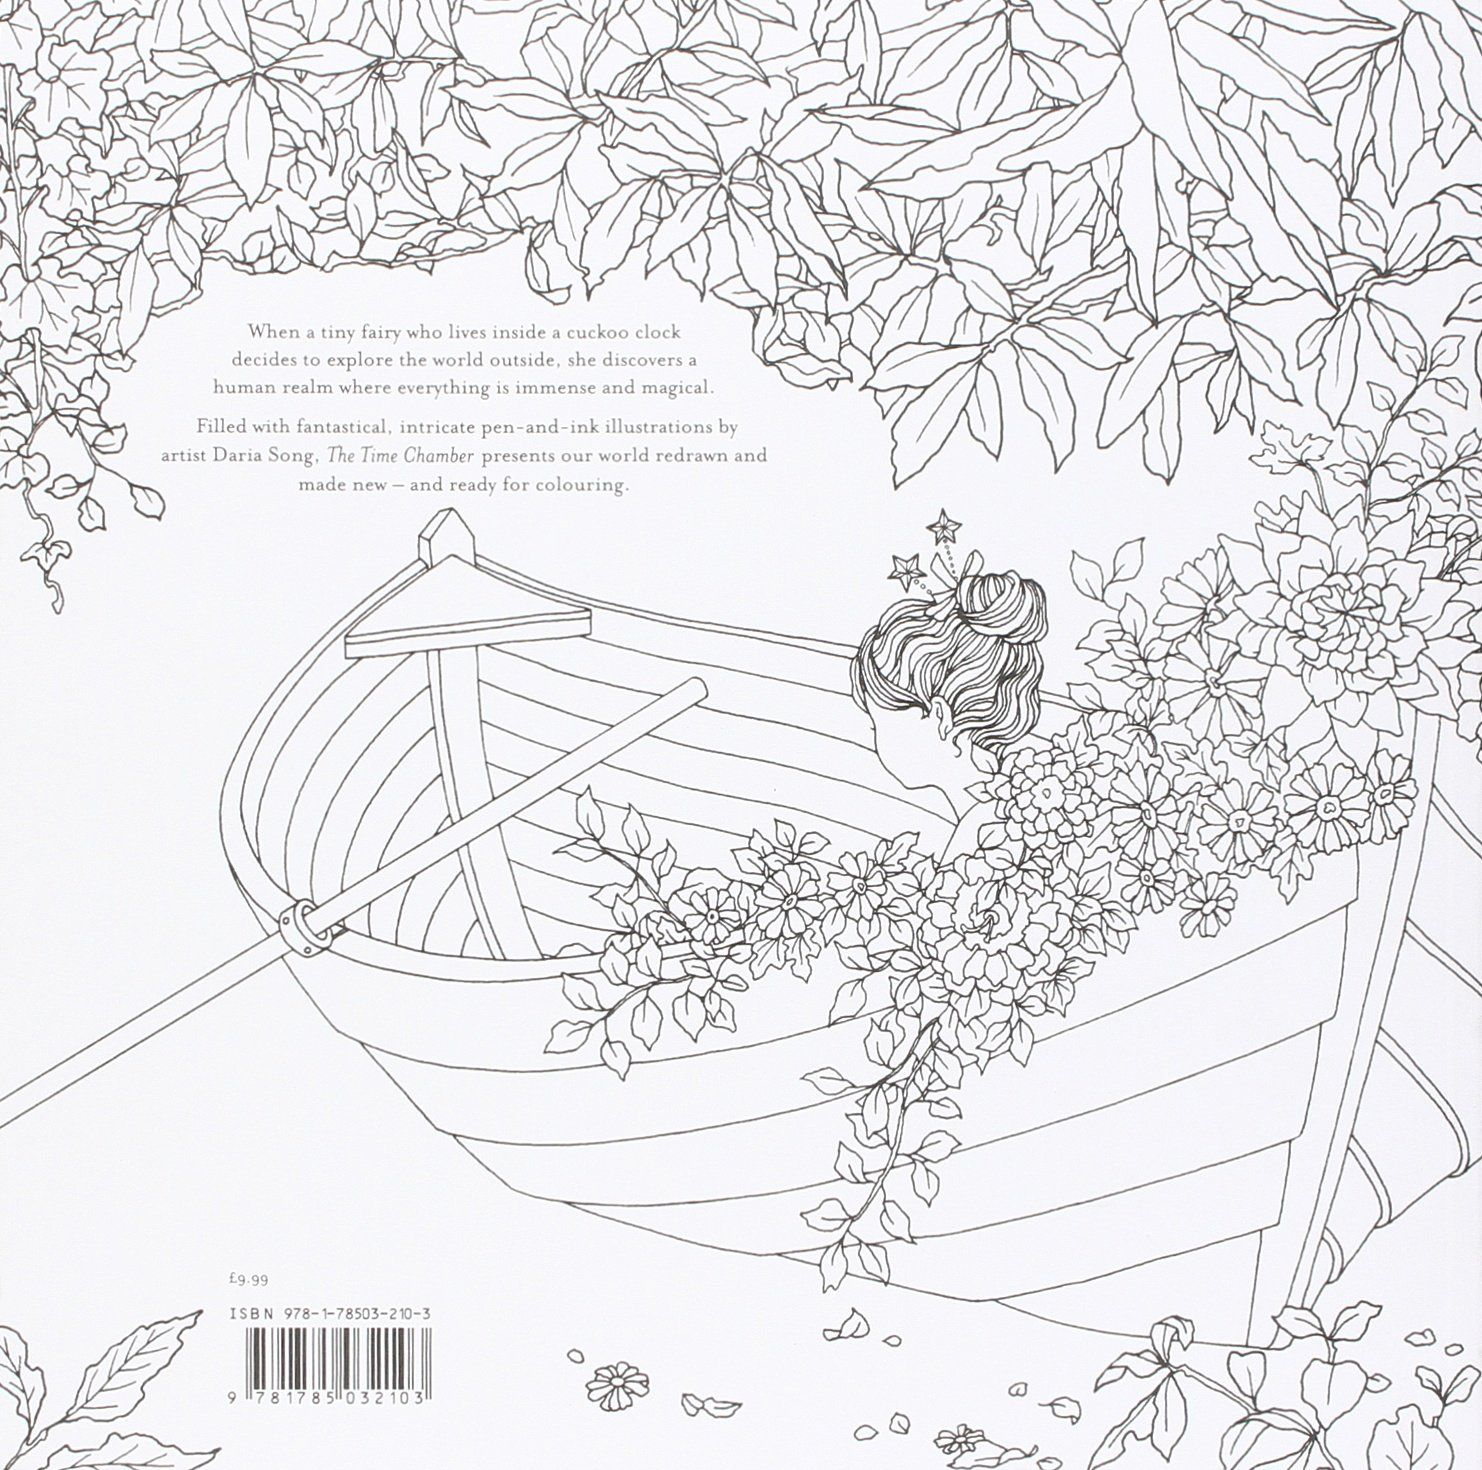 Buy The Time Chamber A Magical Story And Colouring Book Book Online At Low Prices In India The Time Chamber A Magical S Coloring Books Coloring Pages Books